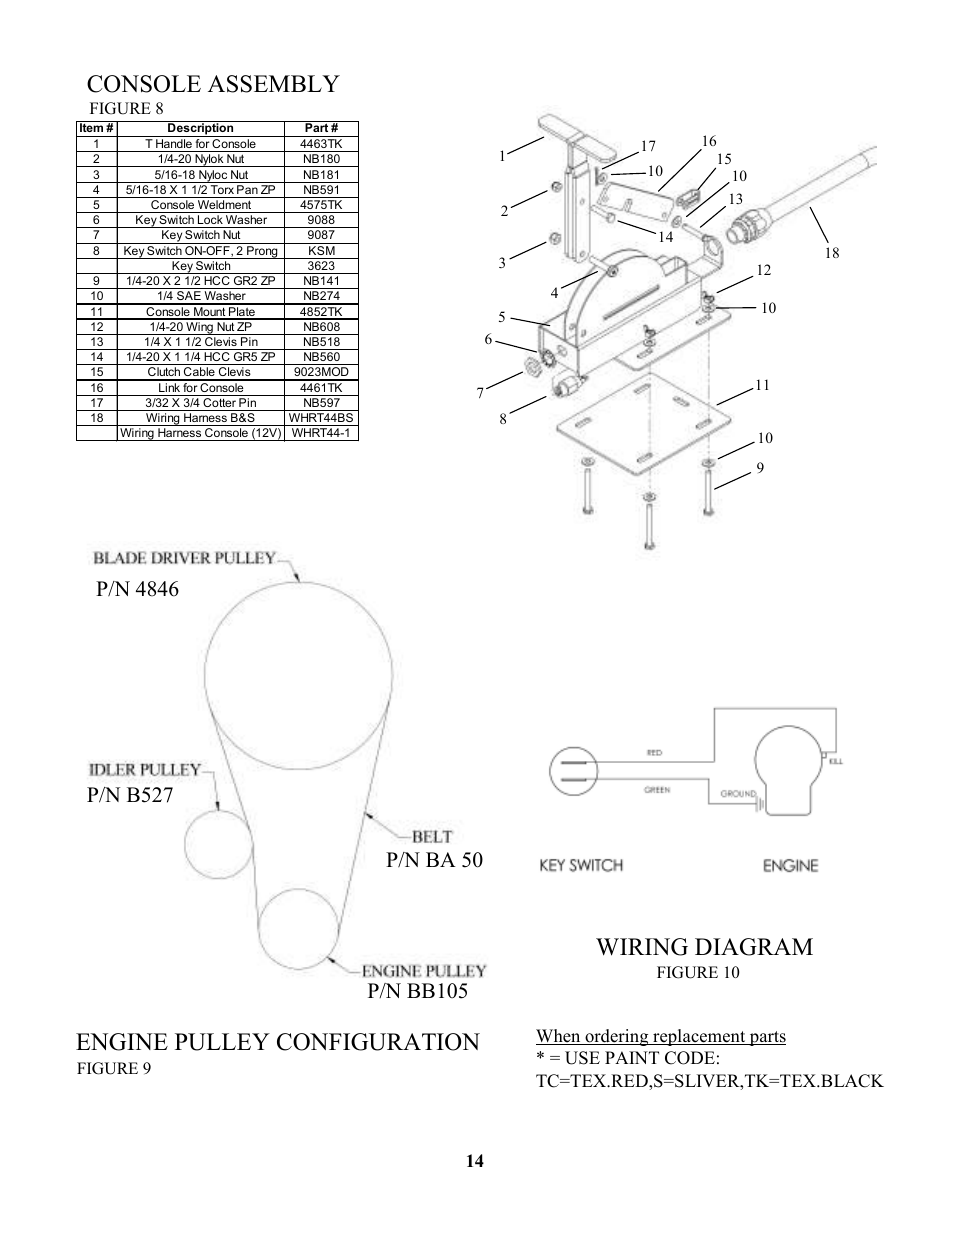 Console assembly, Wiring diagram, Engine pulley